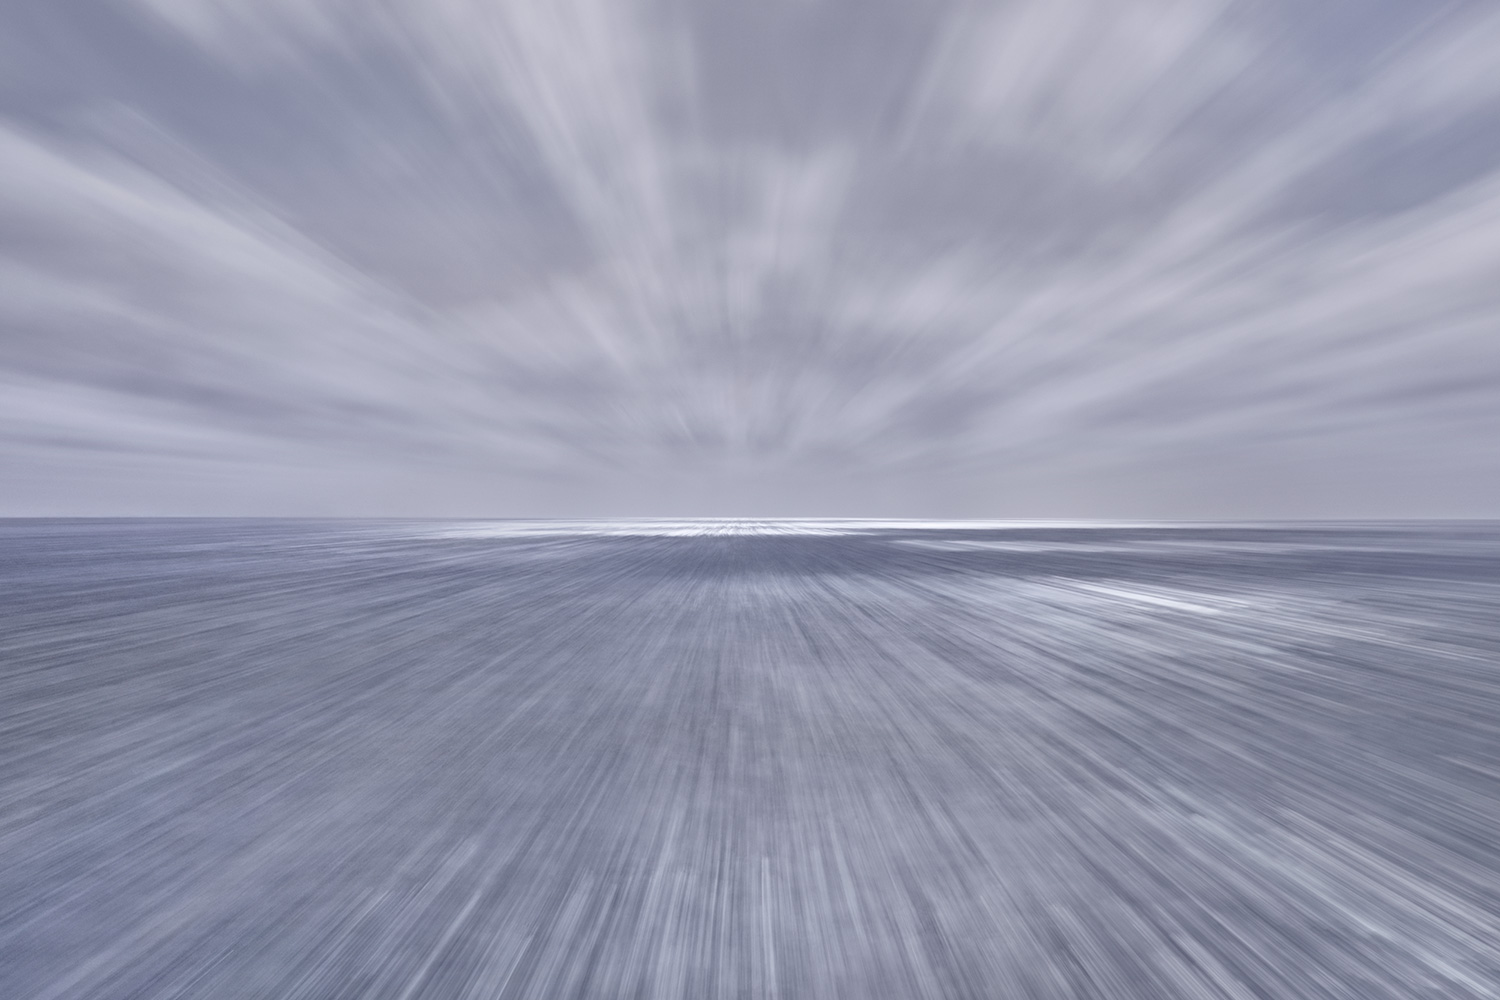 Wedell Sea c-print under acrylic glass, limited edition of 7 100 x 150 cm